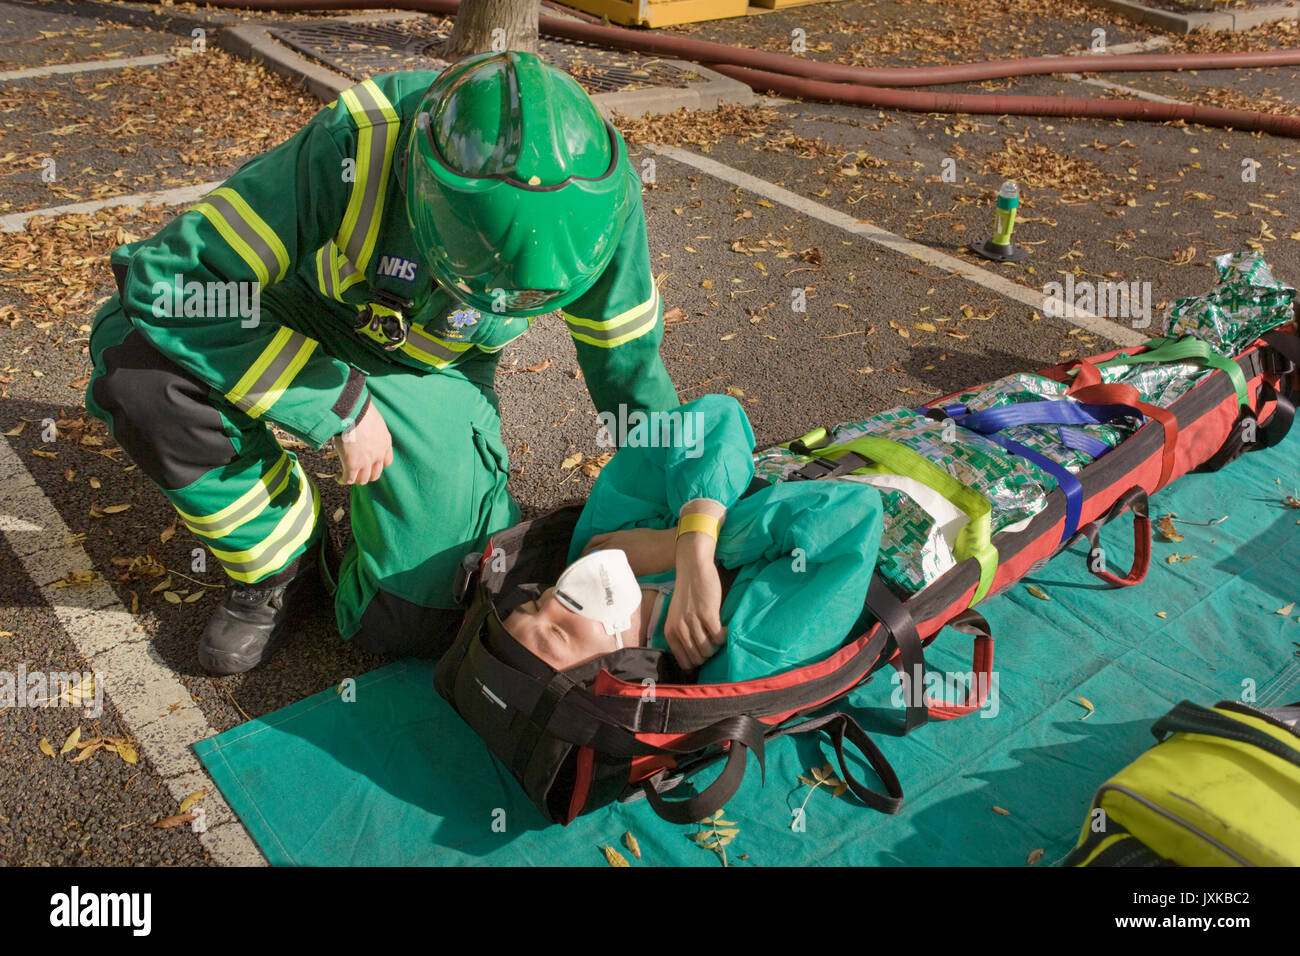 Emergency response paramedic questions simulated casualty in simulated chemical contamination incident - Stock Image